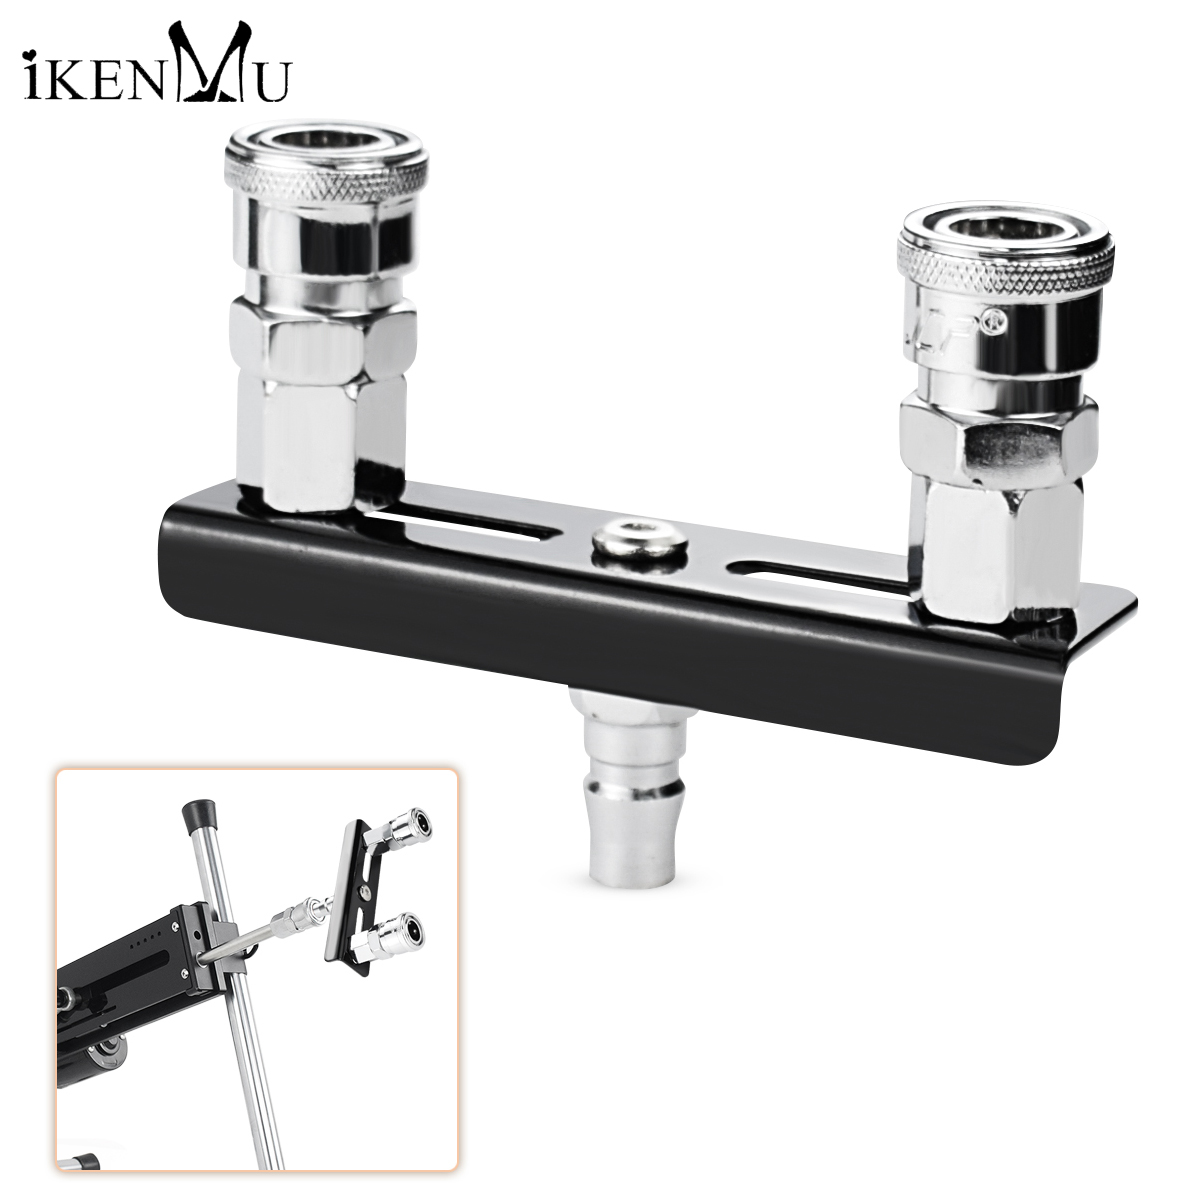 iKenmu Metal Double Quick Connector <font><b>Sex</b></font> <font><b>Machine</b></font> <font><b>Dildos</b></font> Holder Attachment Vac-u-Lock <font><b>Dildos</b></font> Holder Attachment Adult <font><b>Sex</b></font> Products image